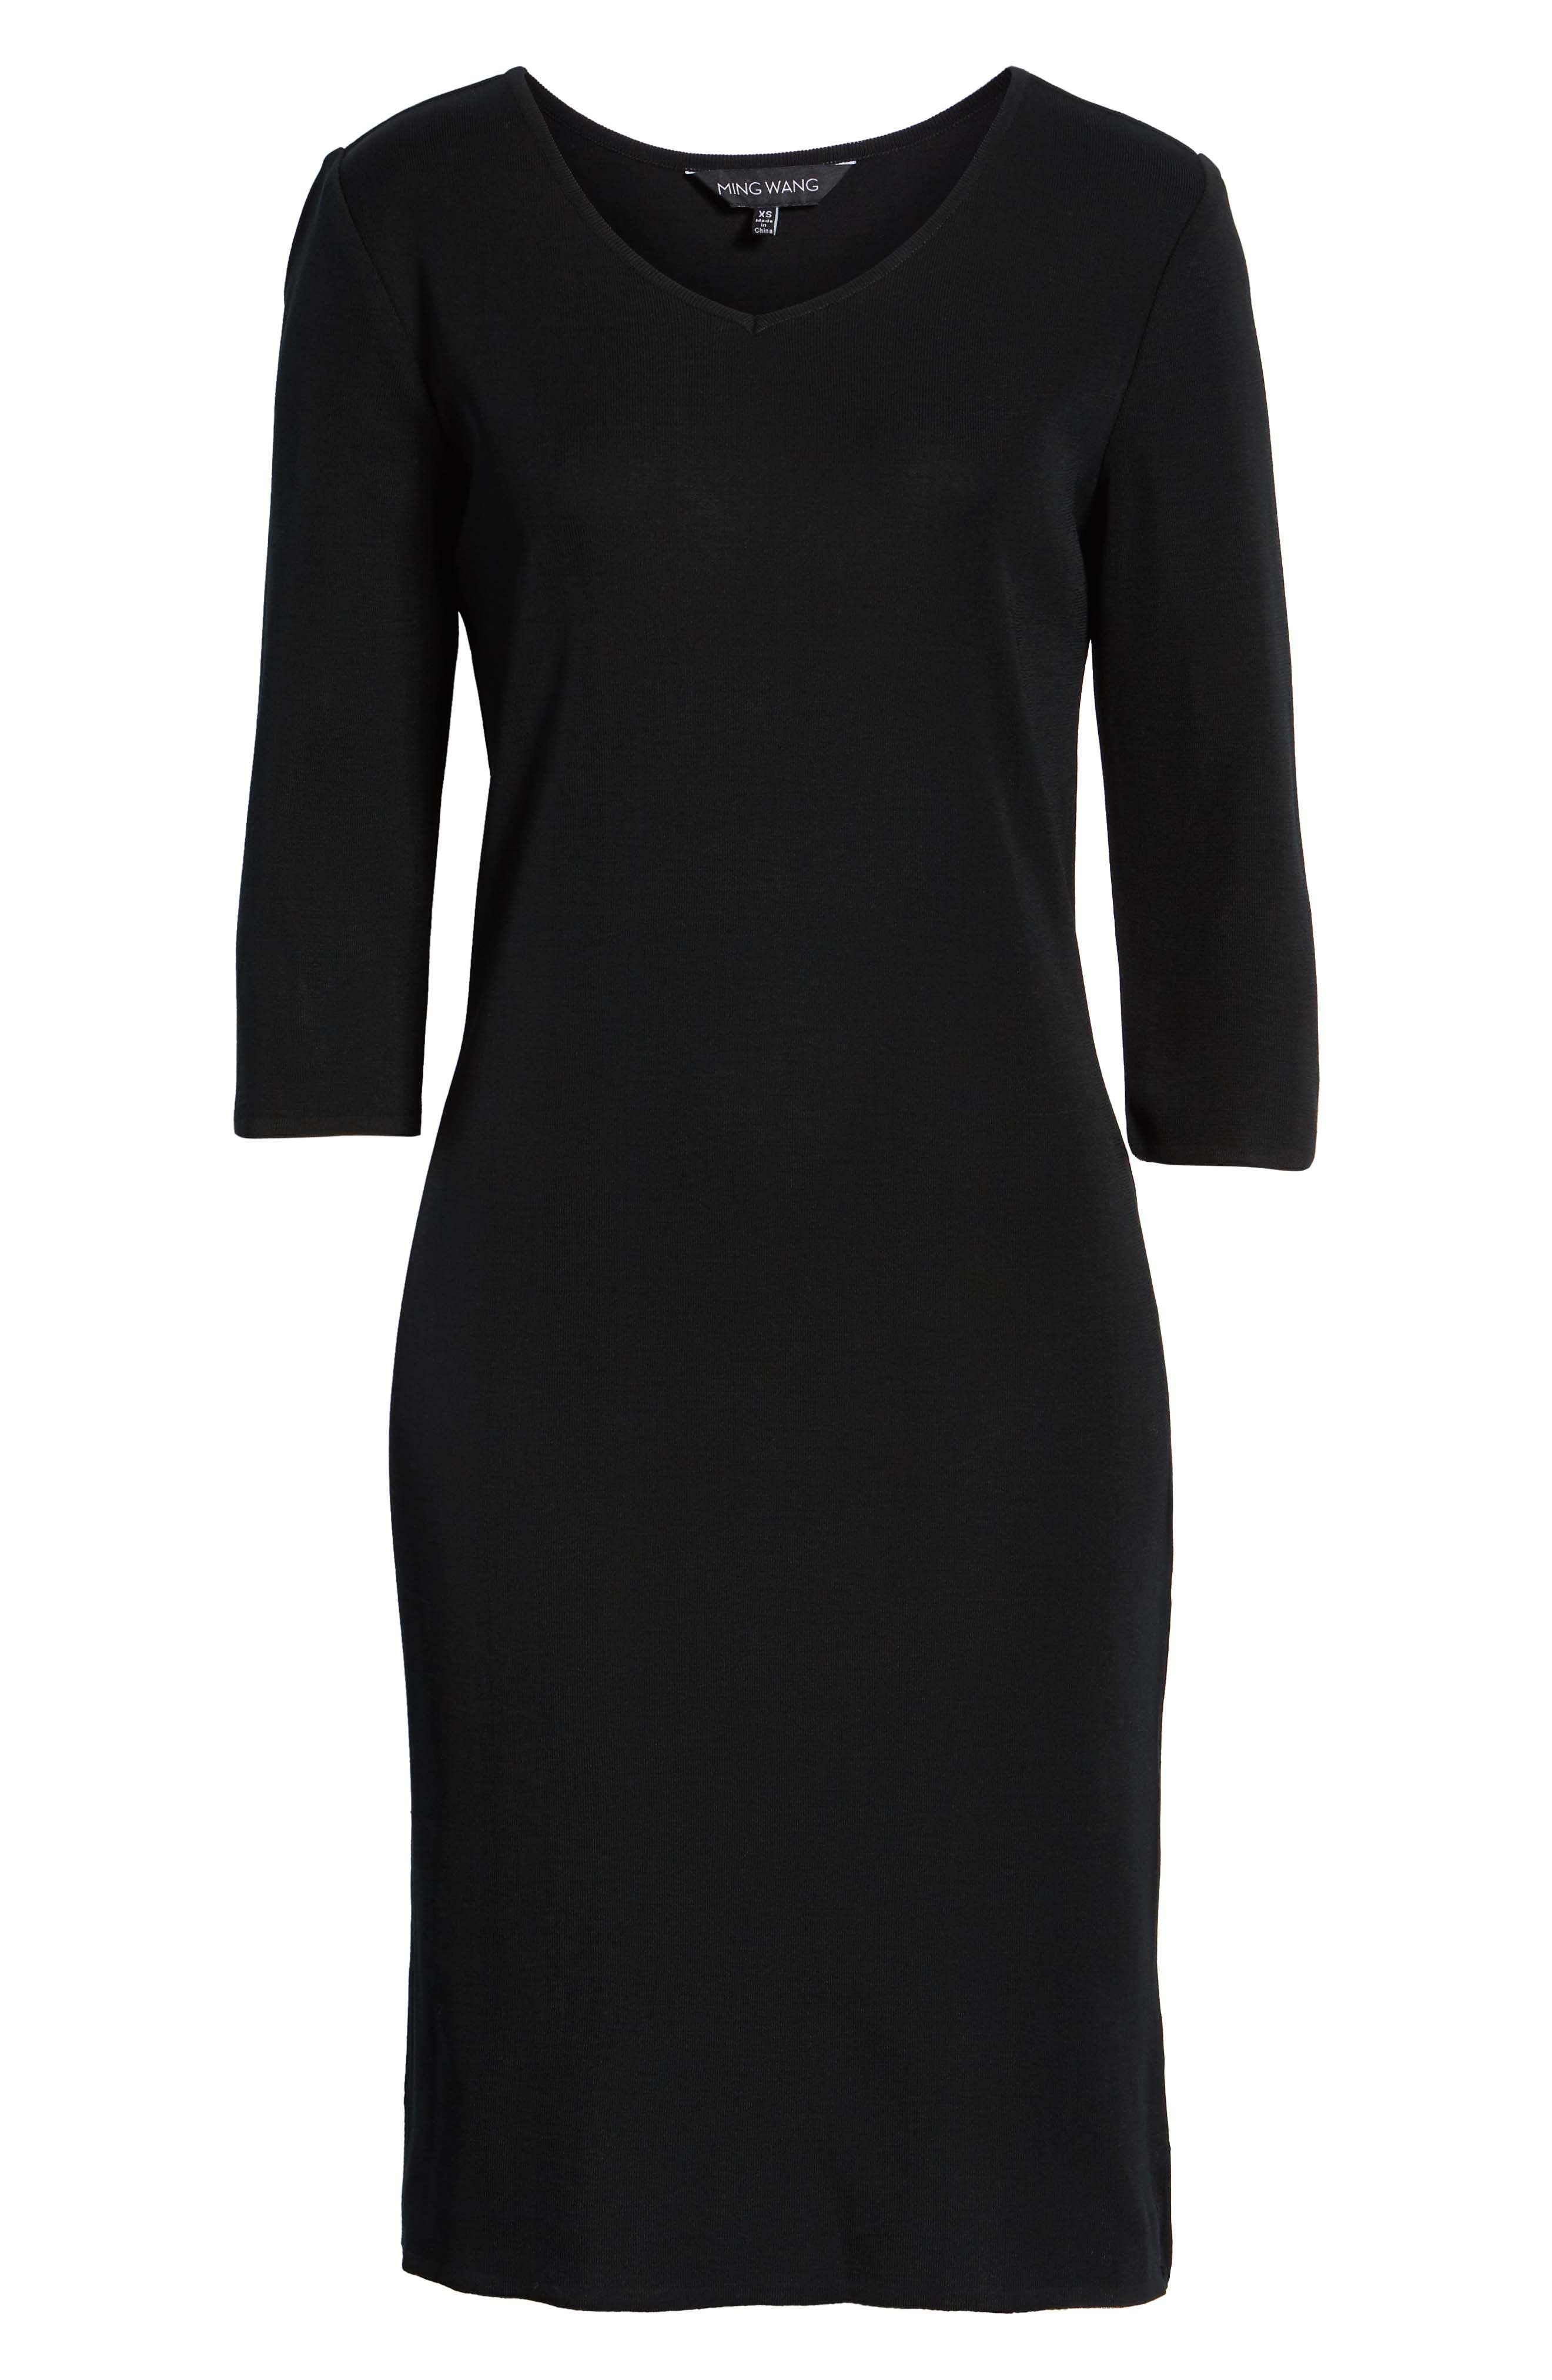 MING WANG,                             V-Neck Dress,                             Alternate thumbnail 7, color,                             BLACK